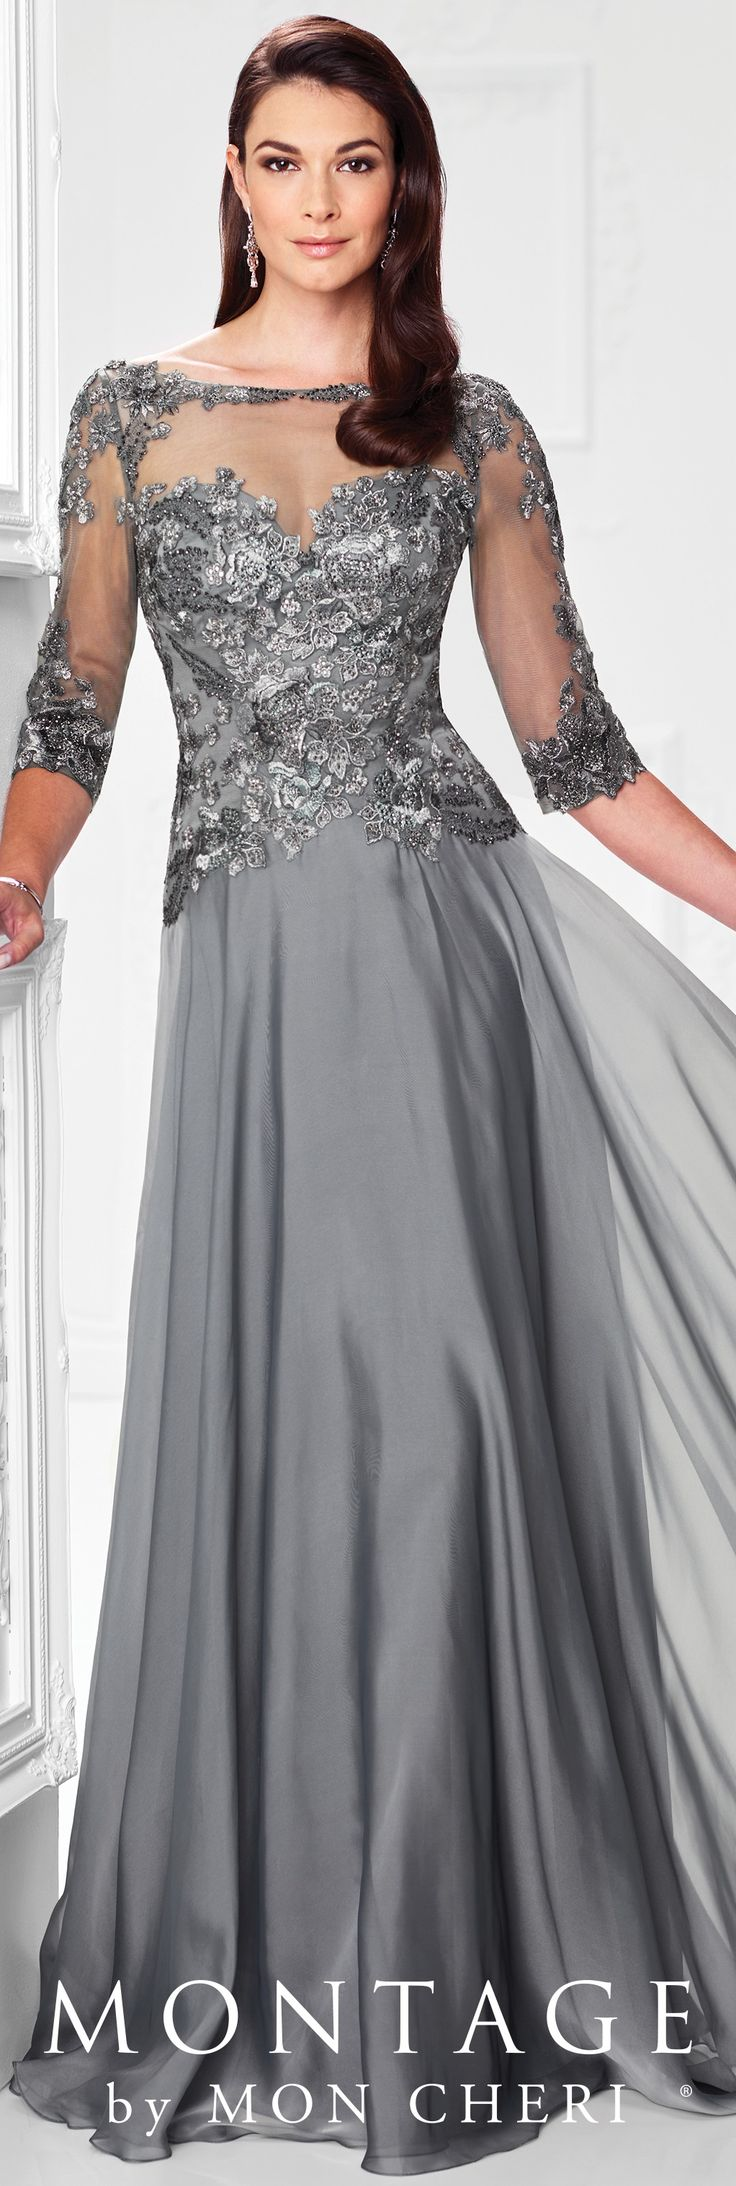 Formal Evening Gowns by Mon Cheri - Spring 2017 - Style No. 117901 - pewter chiffon evening dress with beaded floral lace bodice and illusion 3/4 length sleeves